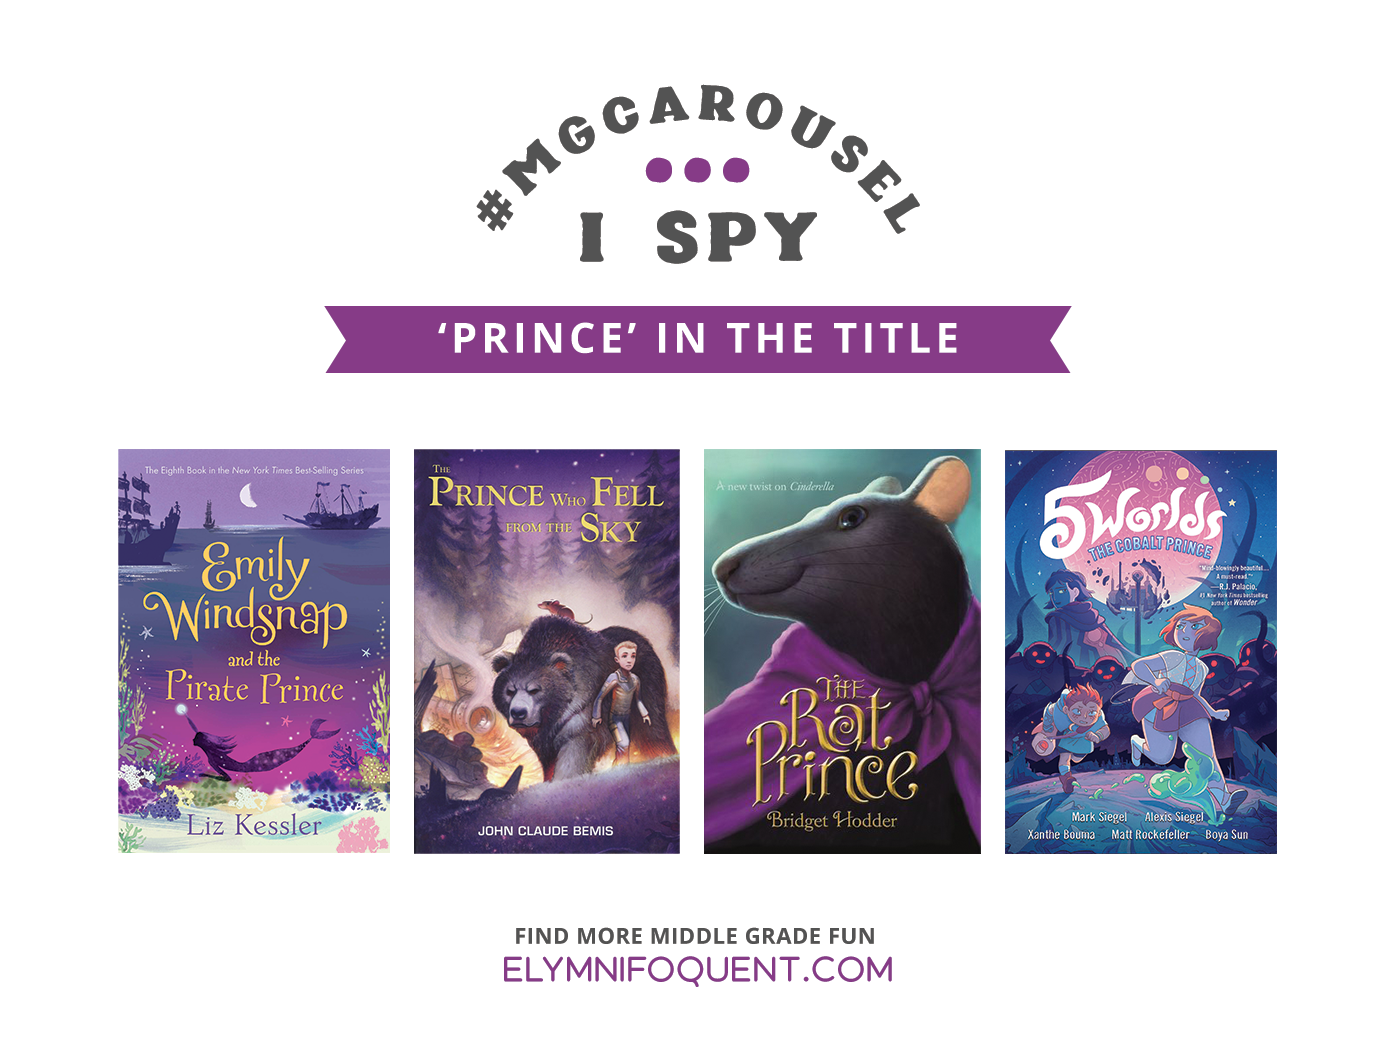 I SPY: 'Prince' in the Title featuring EMILY WINDSNAP AND THE PIRATE PRINCE by Liz Kessler; THE PRINCE WHO FELL FROM THE SKY by John Claude Bemis; THE RAT PRINCE by Bridget Hodder; and 5 WORLDS: THE COBALT PRINCE by Mark Siegel, Alexis Siegel, Xanthe Bouma, Matt Rockefeller, and Boya Sun